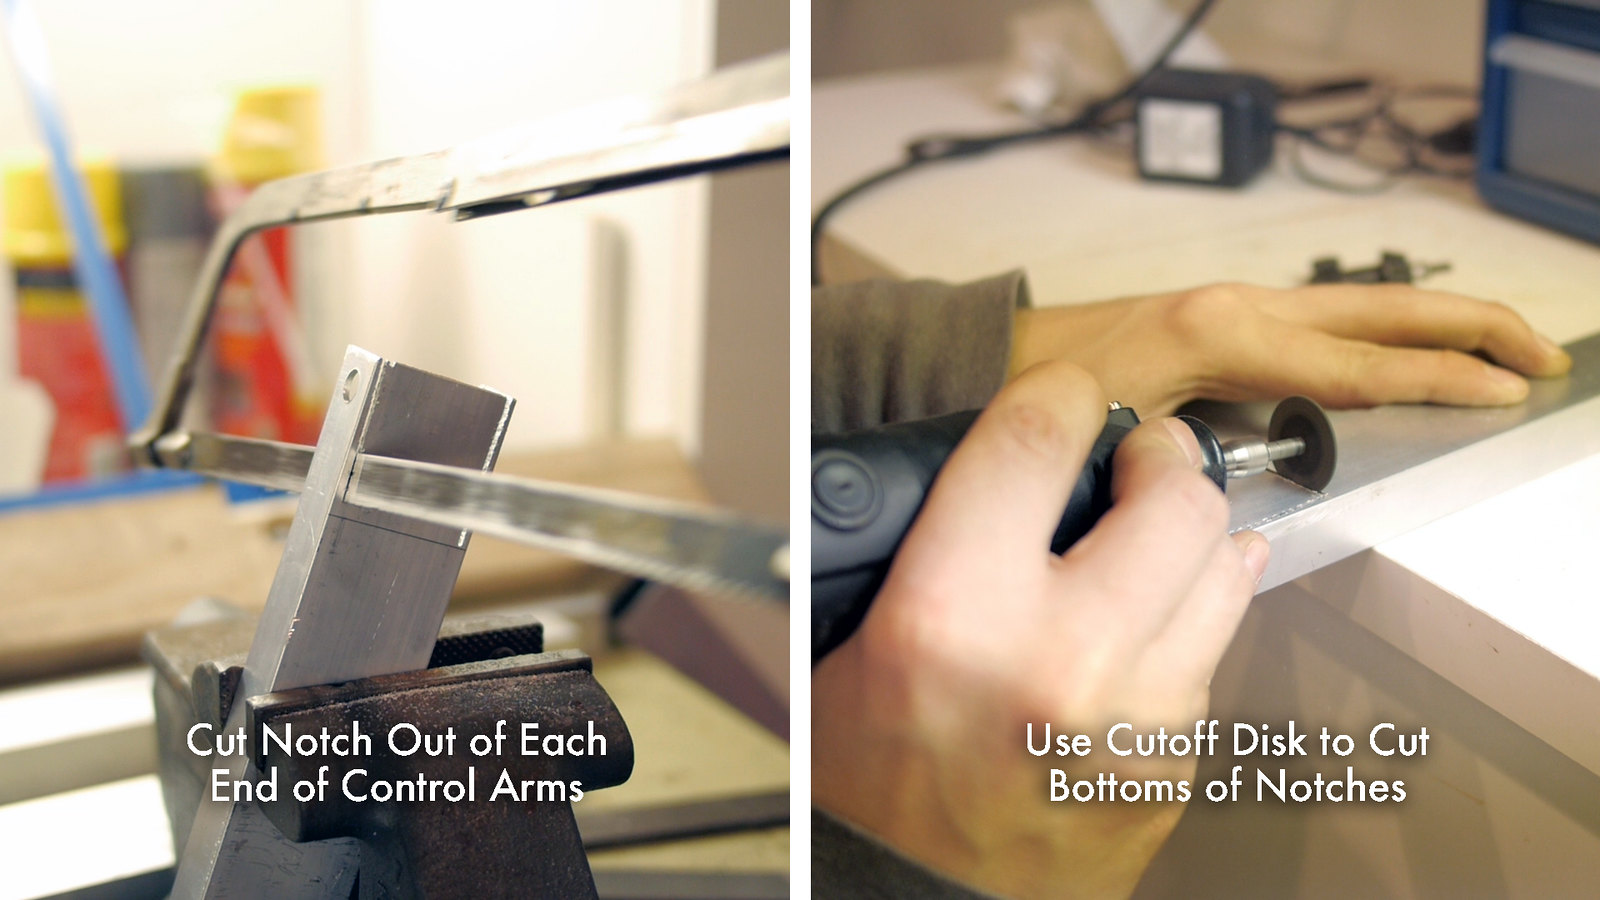 Cut Notches in Control Arms